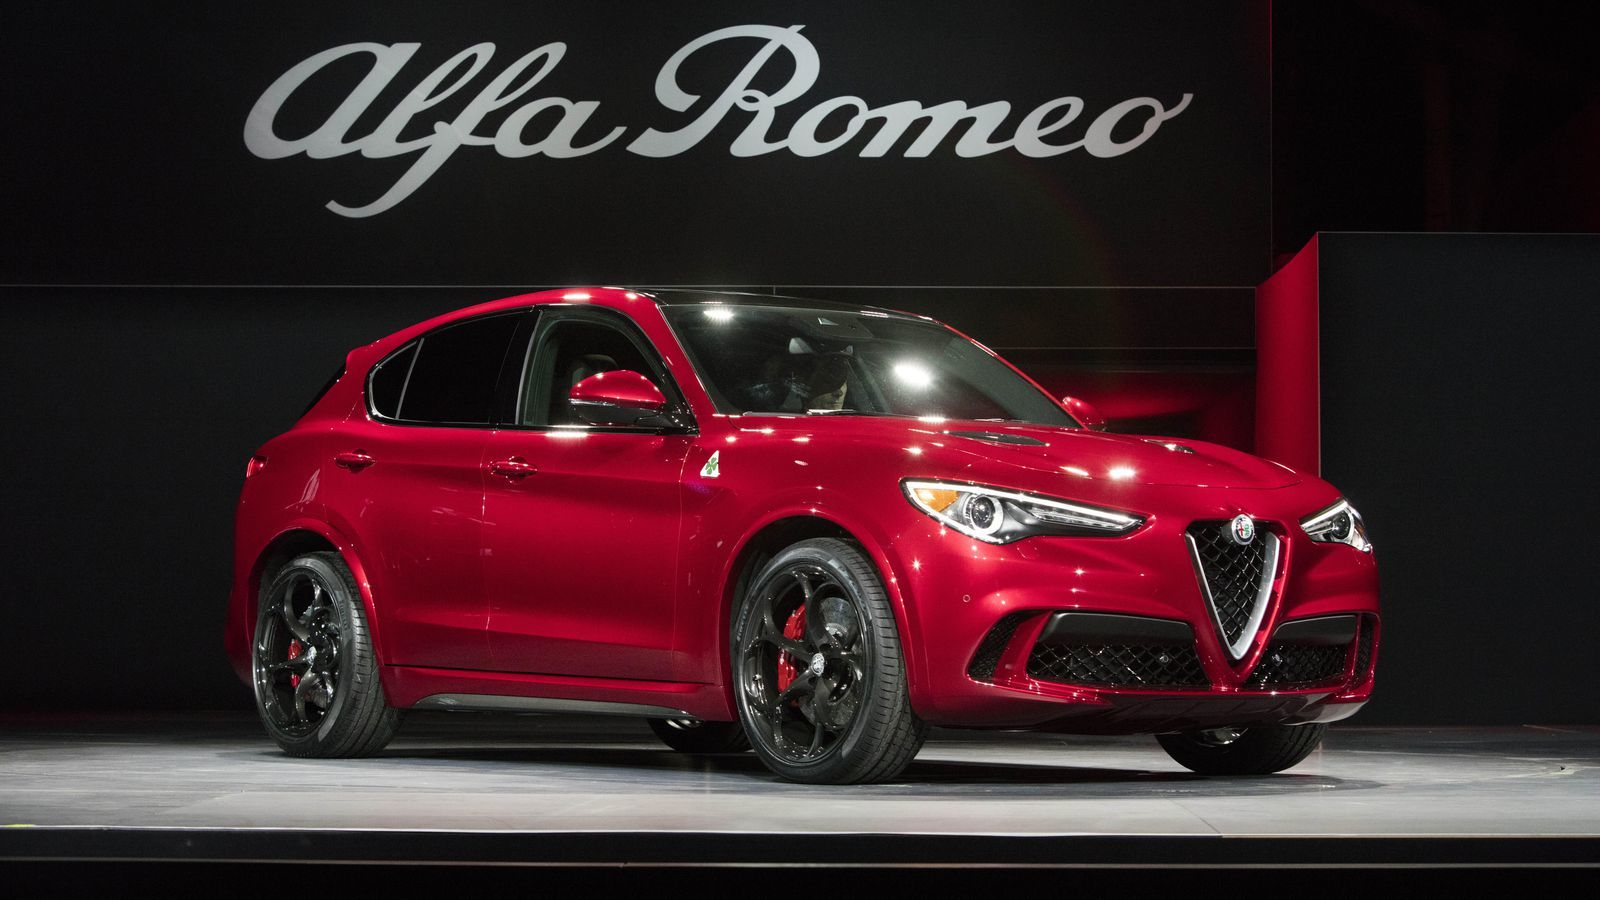 If you want to see the 2018 Stelvio Quadrifoglio in person, visit Findlay Fiat.